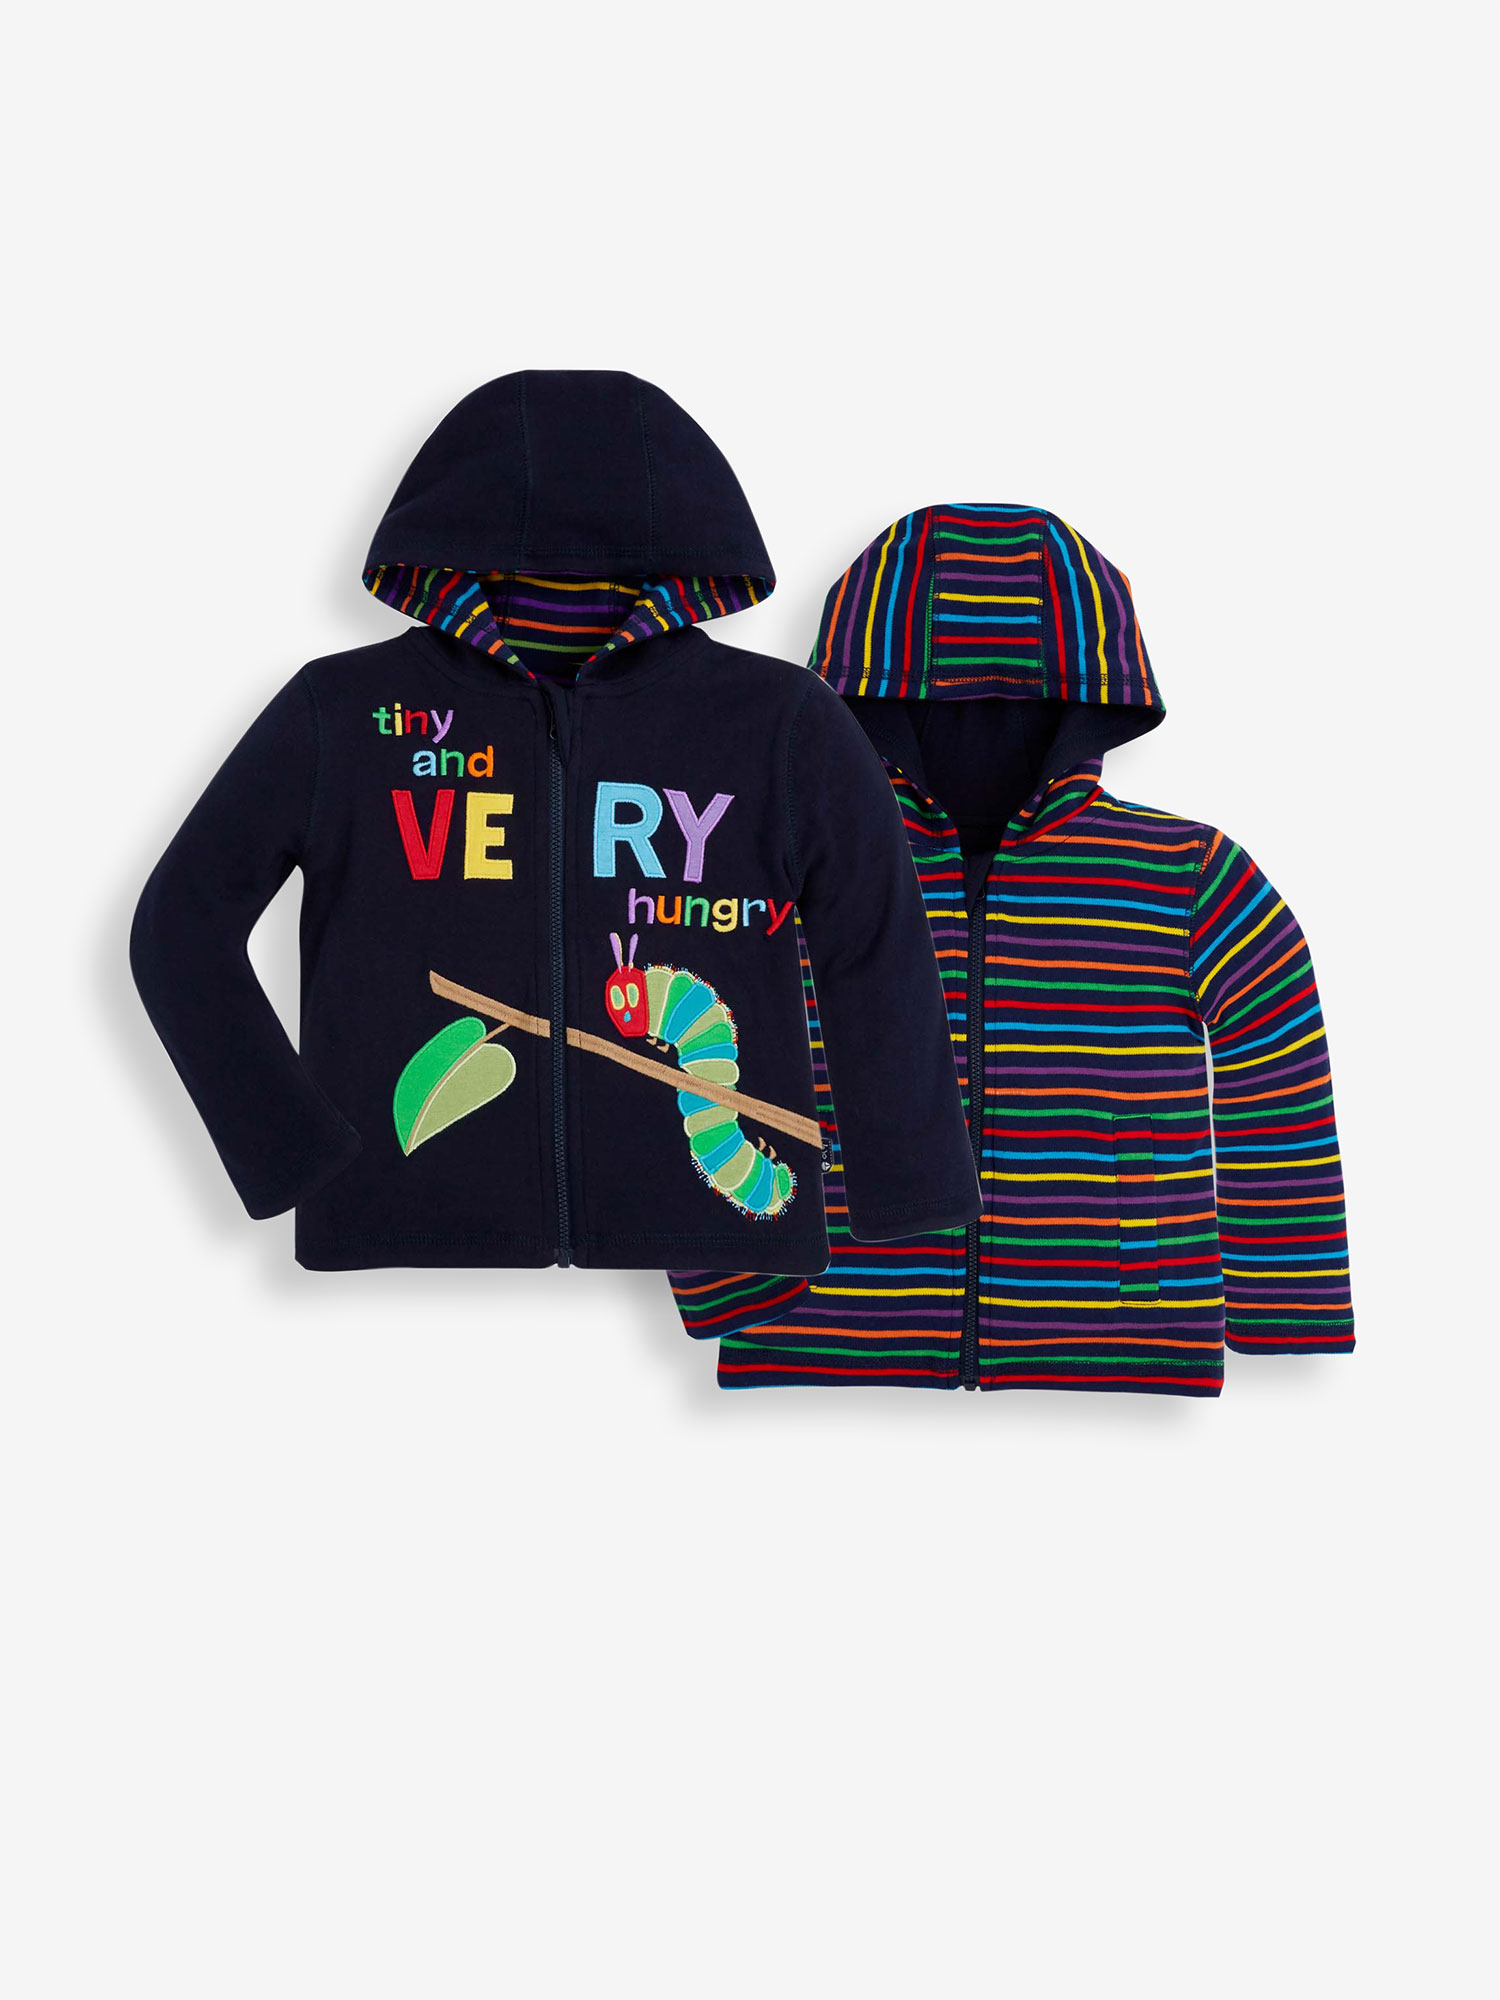 The Very Hungry Caterpillar Reversible Hoodie